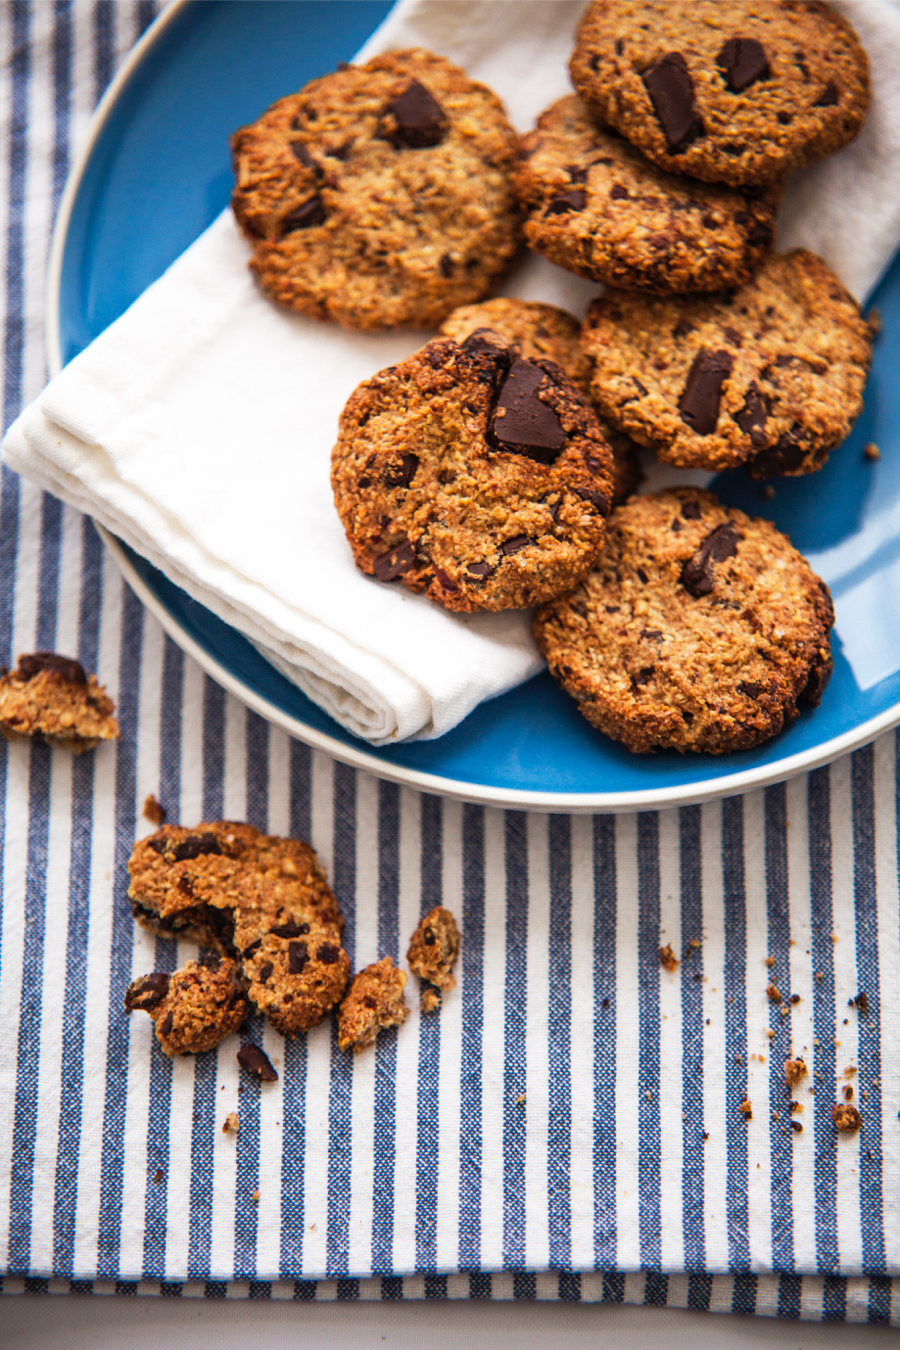 Gezonde chocolate chip cookies van Chickslovefood